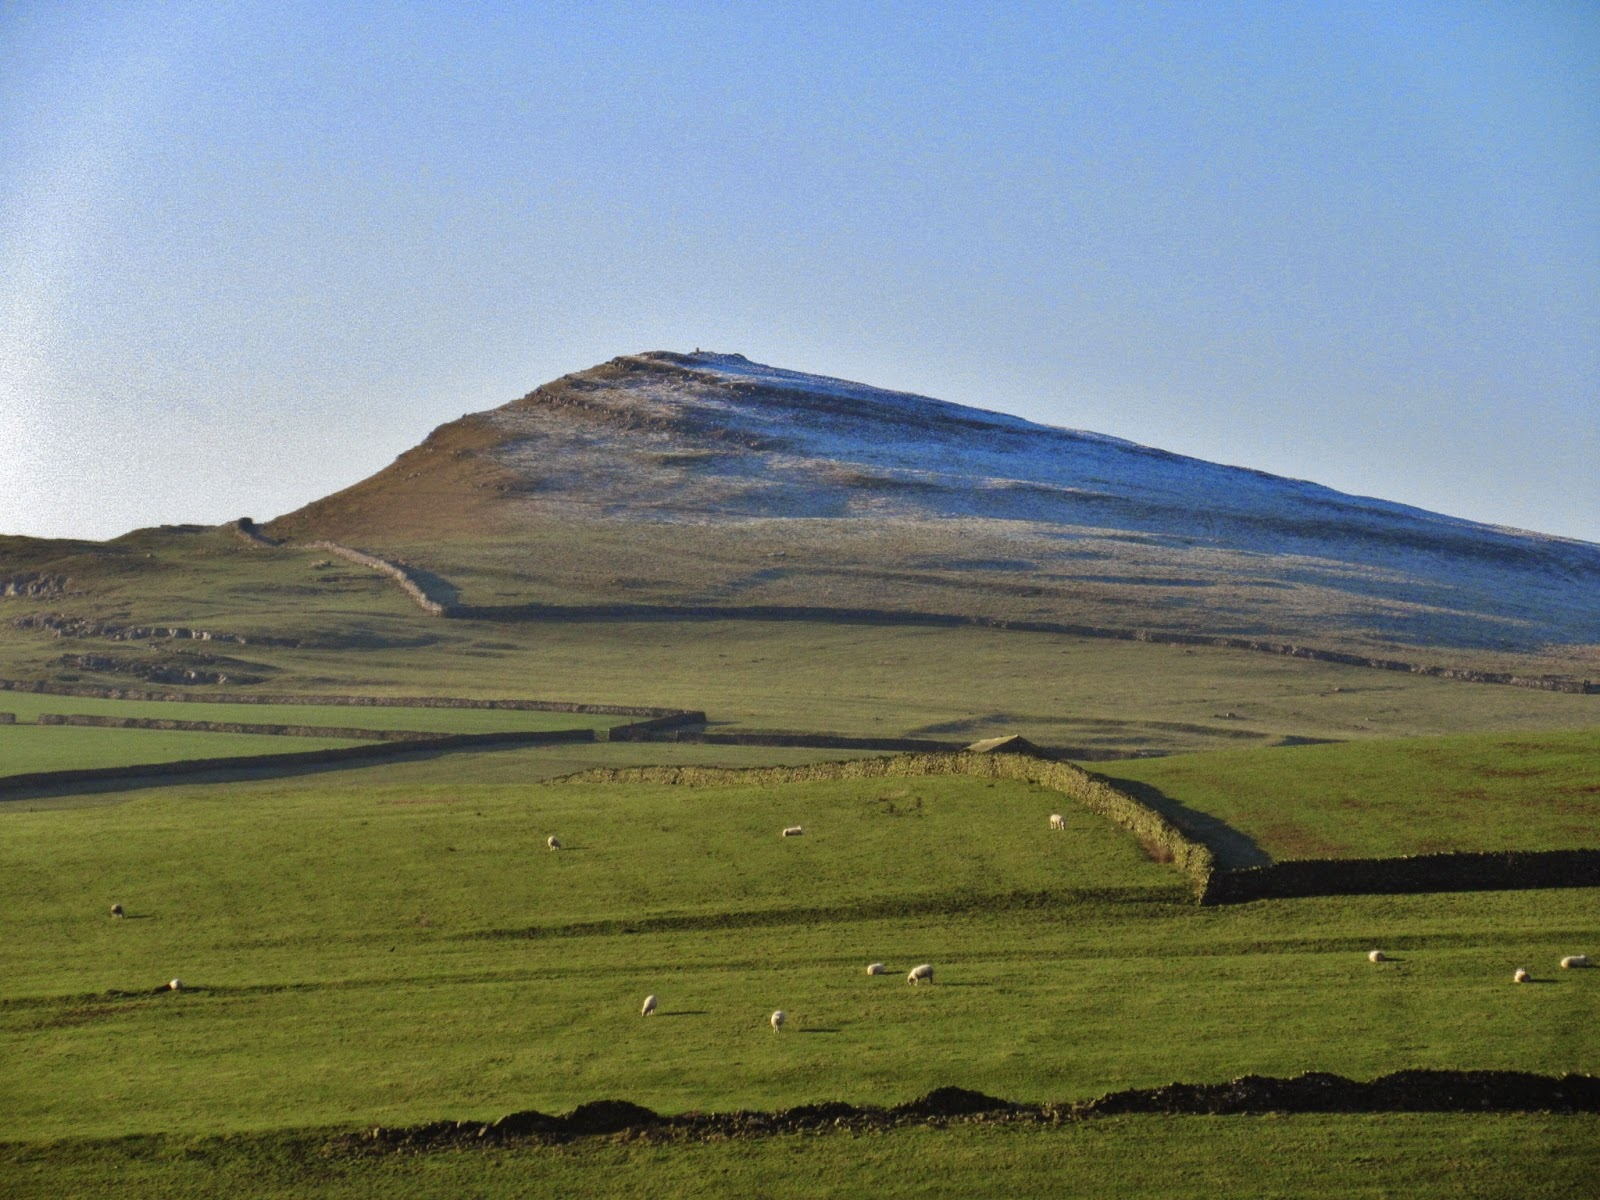 Smearsett Scar, made up of Cove and Gordale Limestone – and marking the termination of the Feizor Fault as it meets Ribblesdale. Stephen Oldfield